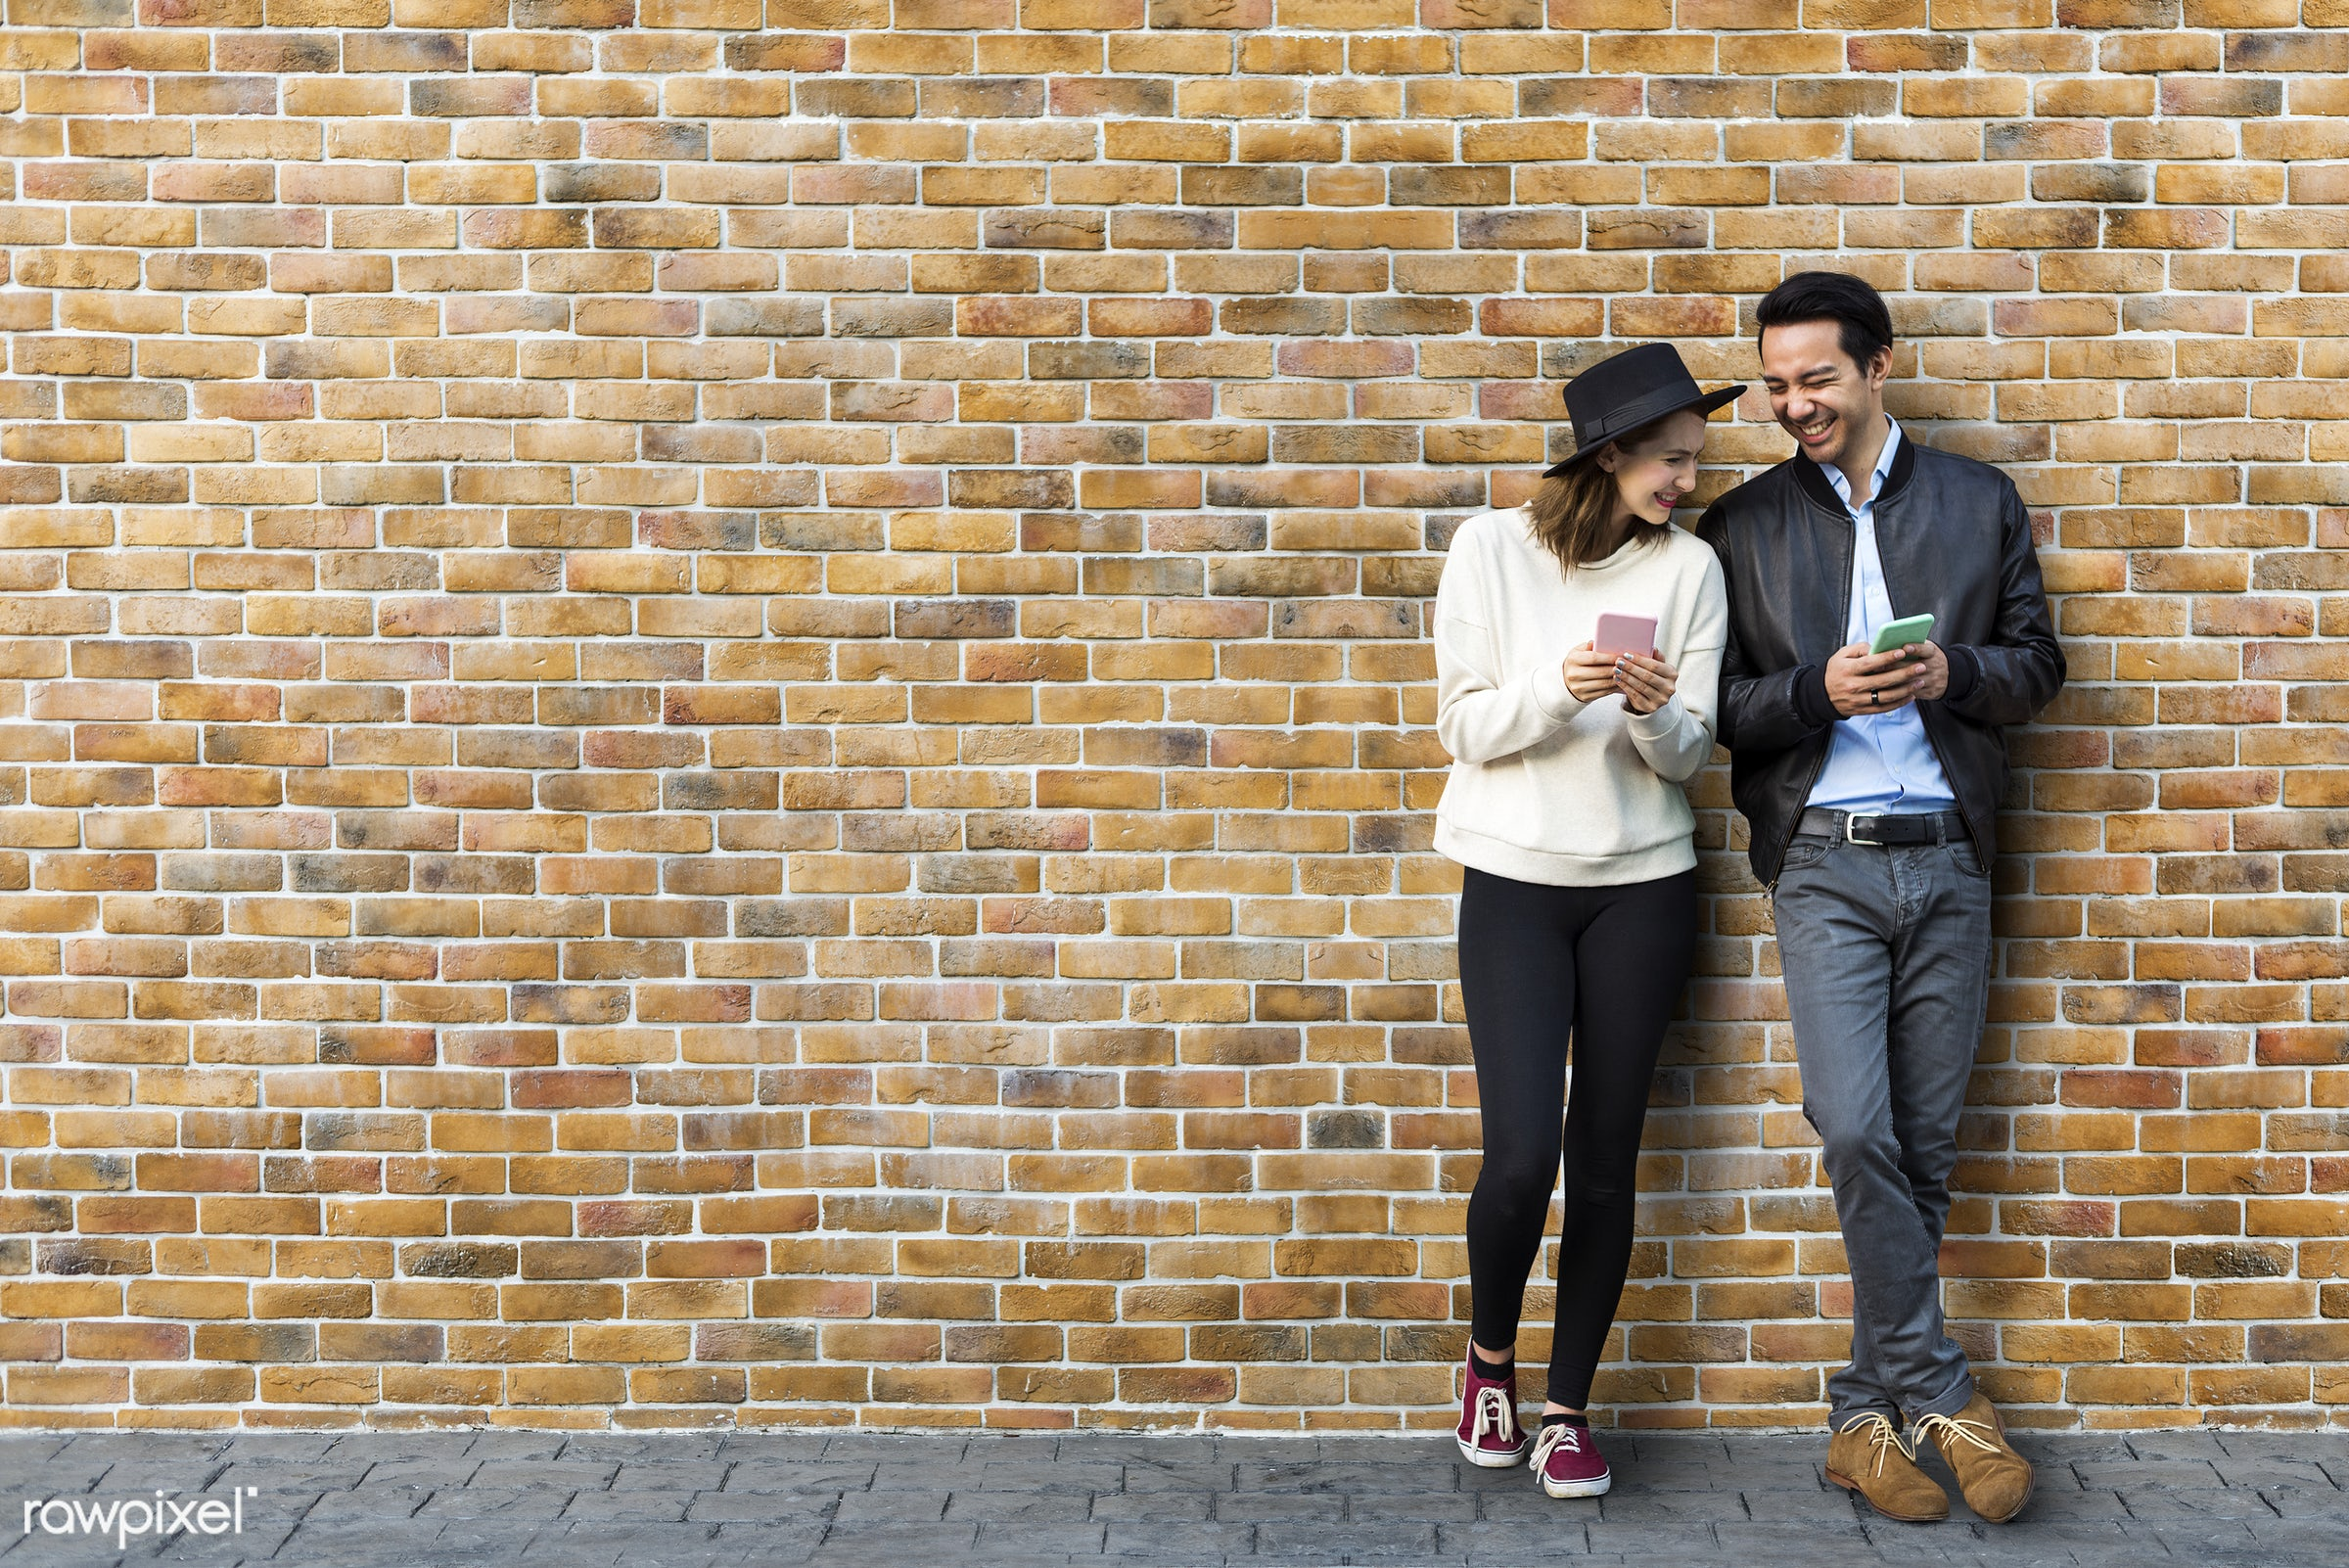 couple, love, mockup, asian, mobility, outside, dating, brick wall, city, vacation, woman, happiness, adult, american,...